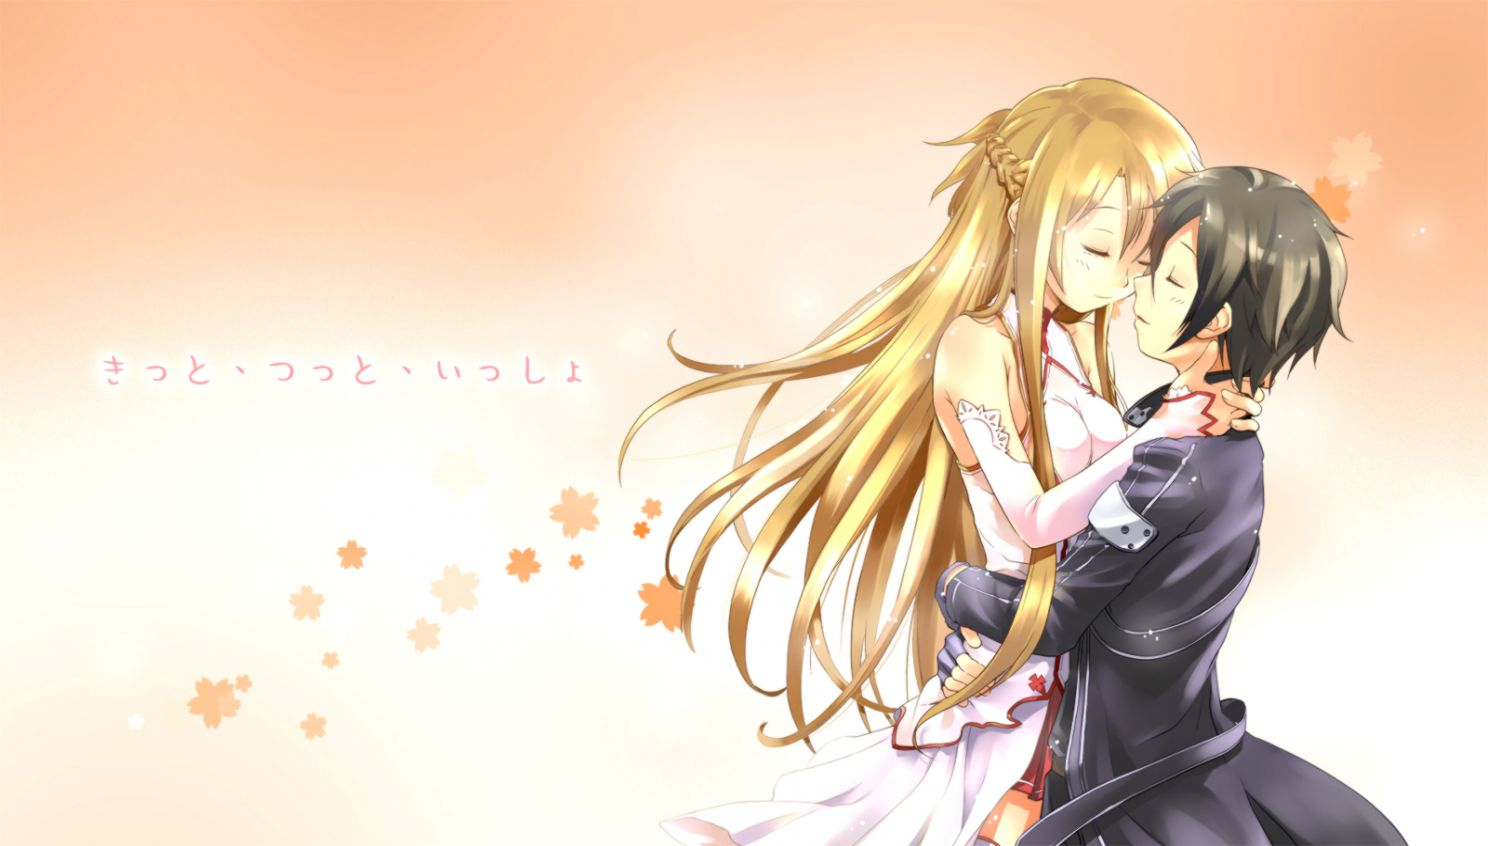 Yuuki Asuna & Kirigaya Kazuto Wallpaper and Background Image